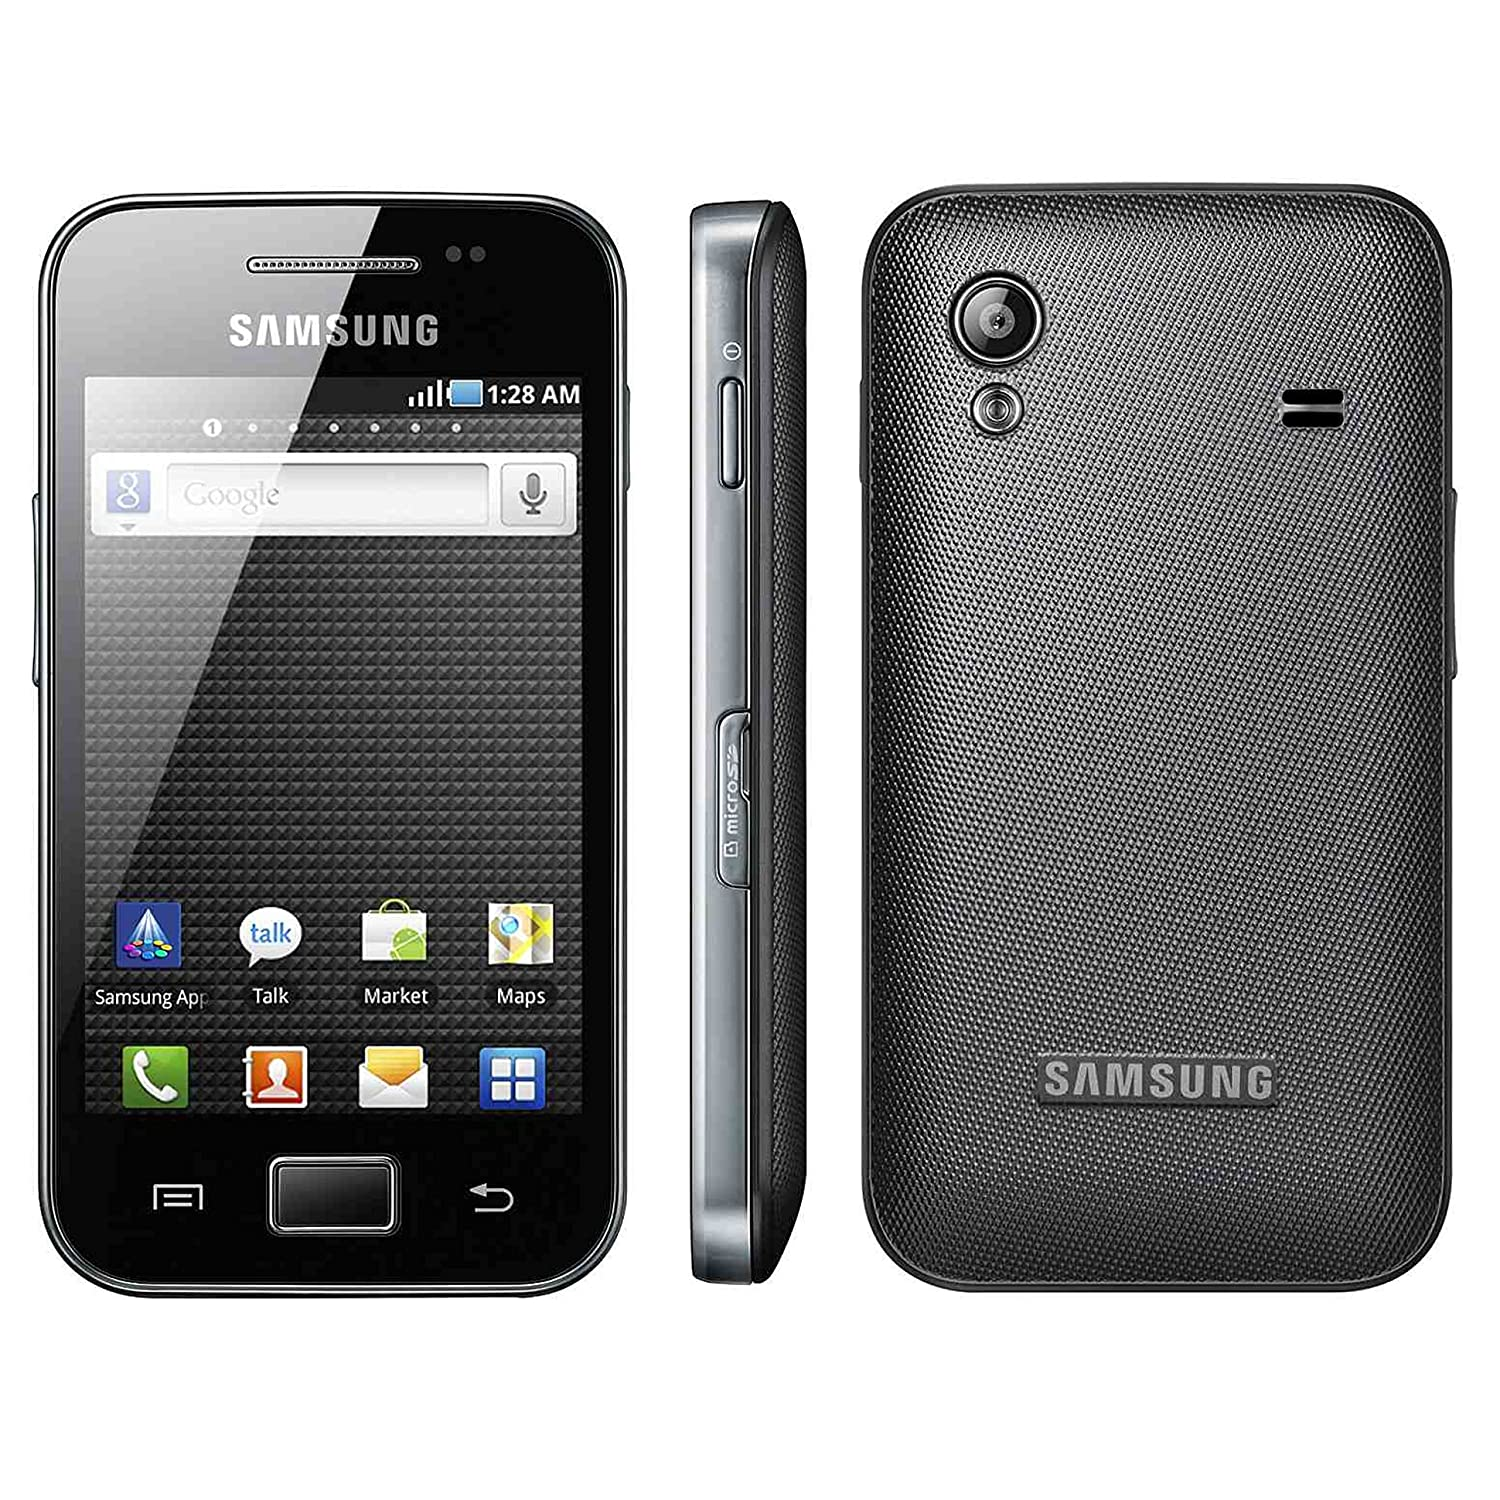 Samsung S5830 Galaxy Ace - Unlocked Phone - Black